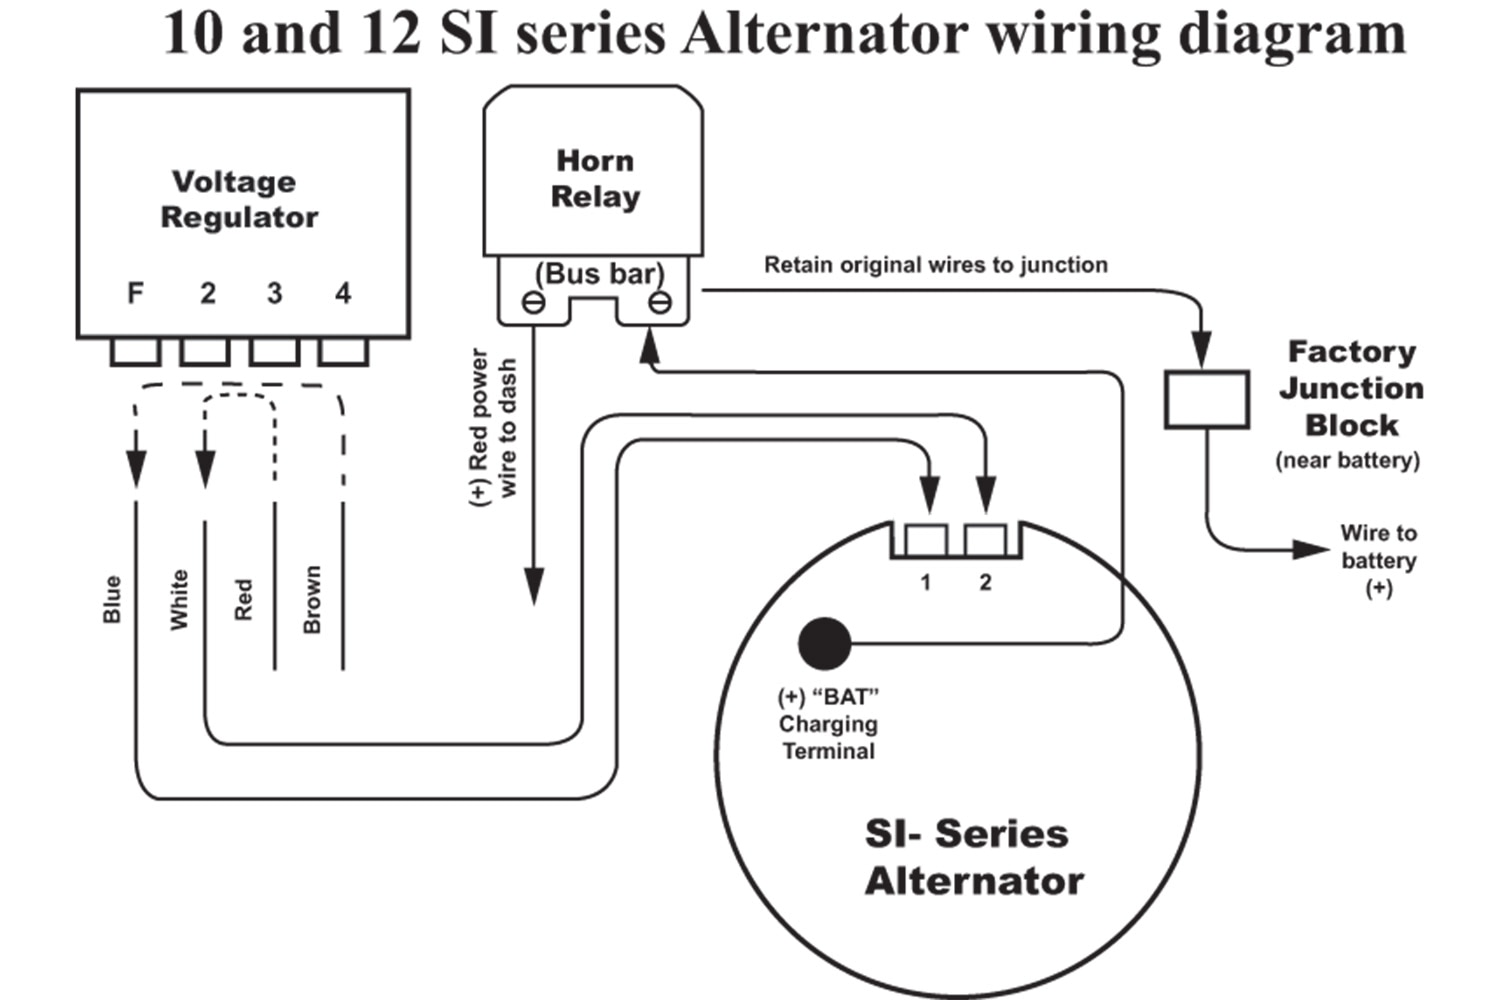 medium resolution of corvair alternator wiring diagram wiring diagram blog wiring diagram for early corvair conversion from generatoir to